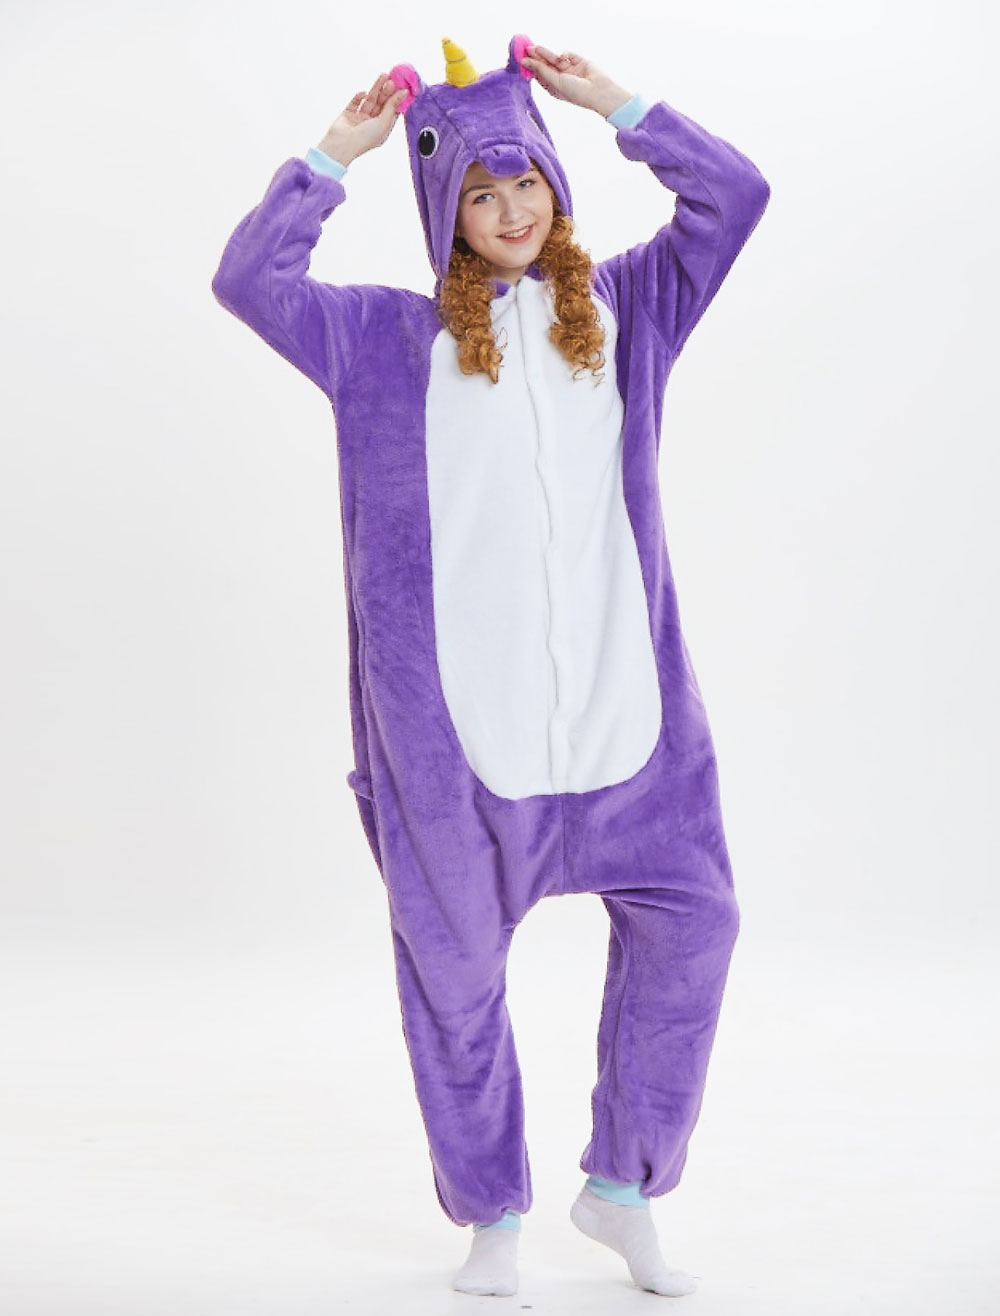 f6743716b ... Unicorn Kigurumi Onesie Pajamas Adults Flannel Purple Hooded Long  Sleeve Jumpsuits Unisex Animal Sleepwear Halloween-. 12. 30%OFF. Color :Purple